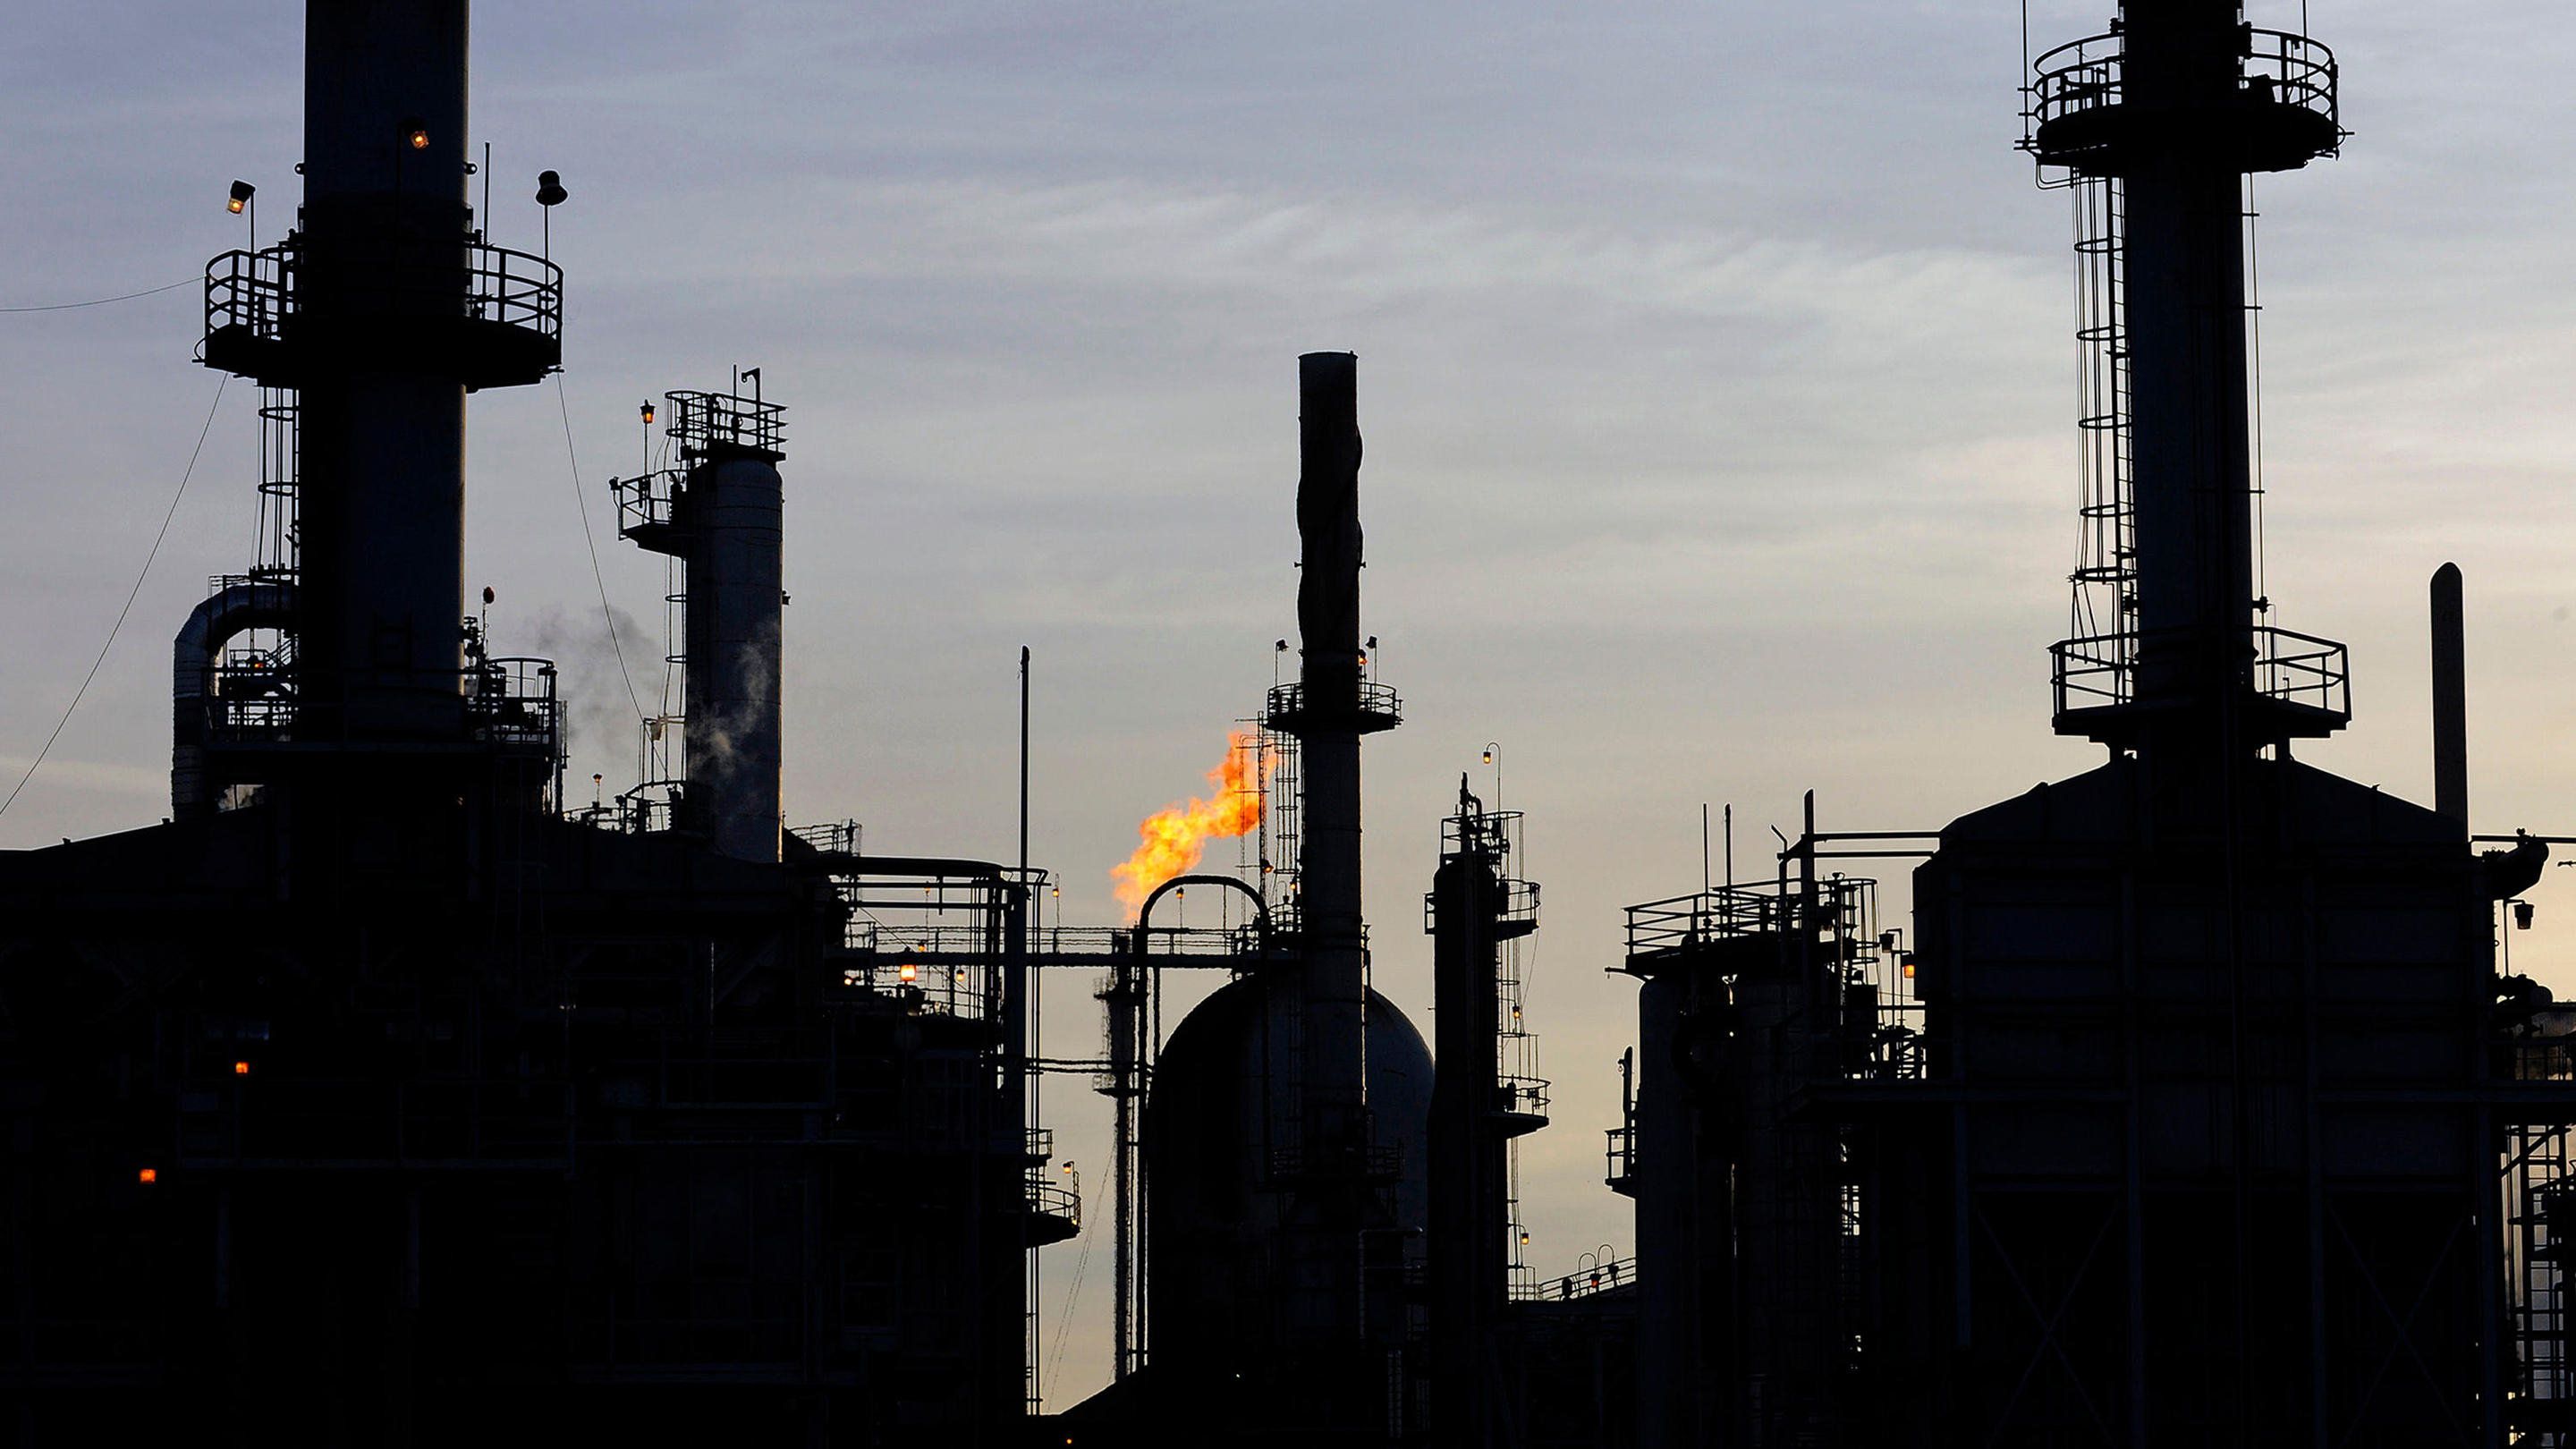 A general view of the Tesoro refinery in Carson, California February 2, 2015.  The Los Angeles Refinery is the largest refinery on the West Coast and at full capacity, it operates at 363,000 barrels per day (bpd), according to a Tesoro fact sheet. REUTERS